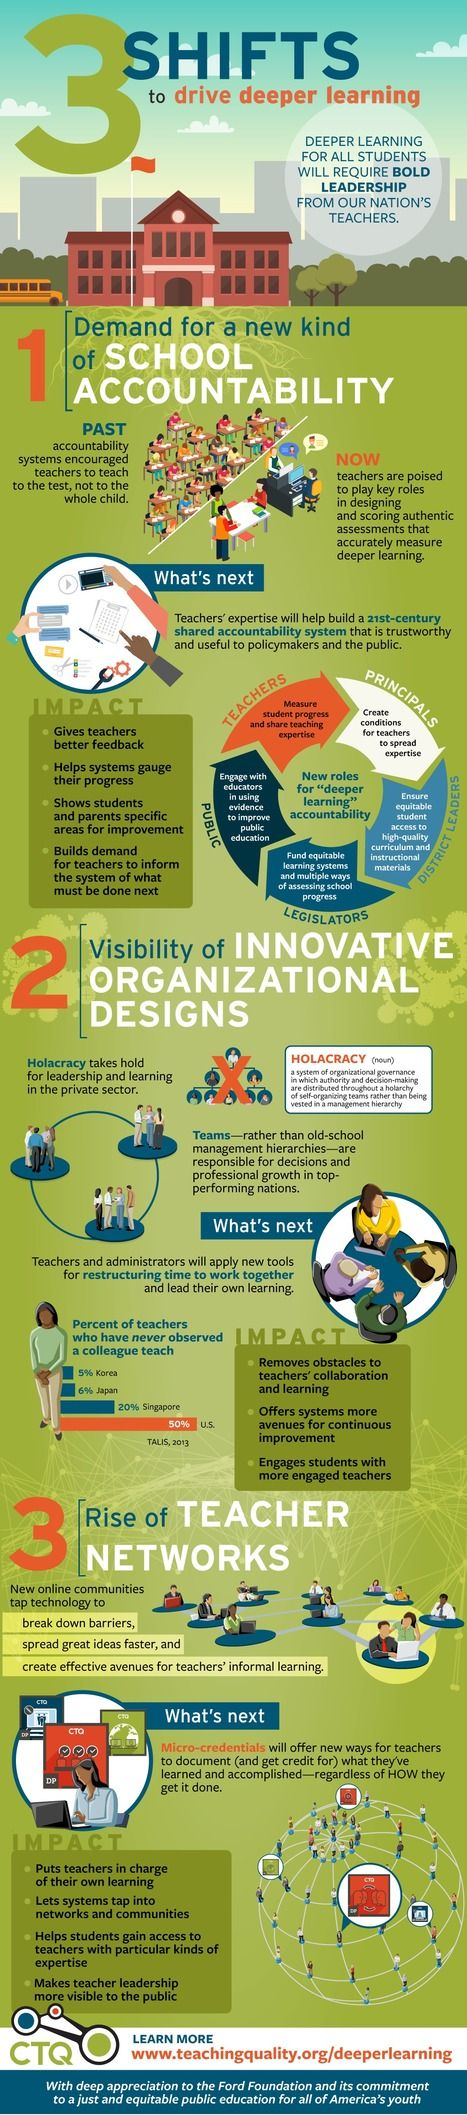 Teacher leadership & deeper learning for all students [#Infographic] | #CTQ #CTQCollab | 21st Century Learning and Teaching | Scoop.it